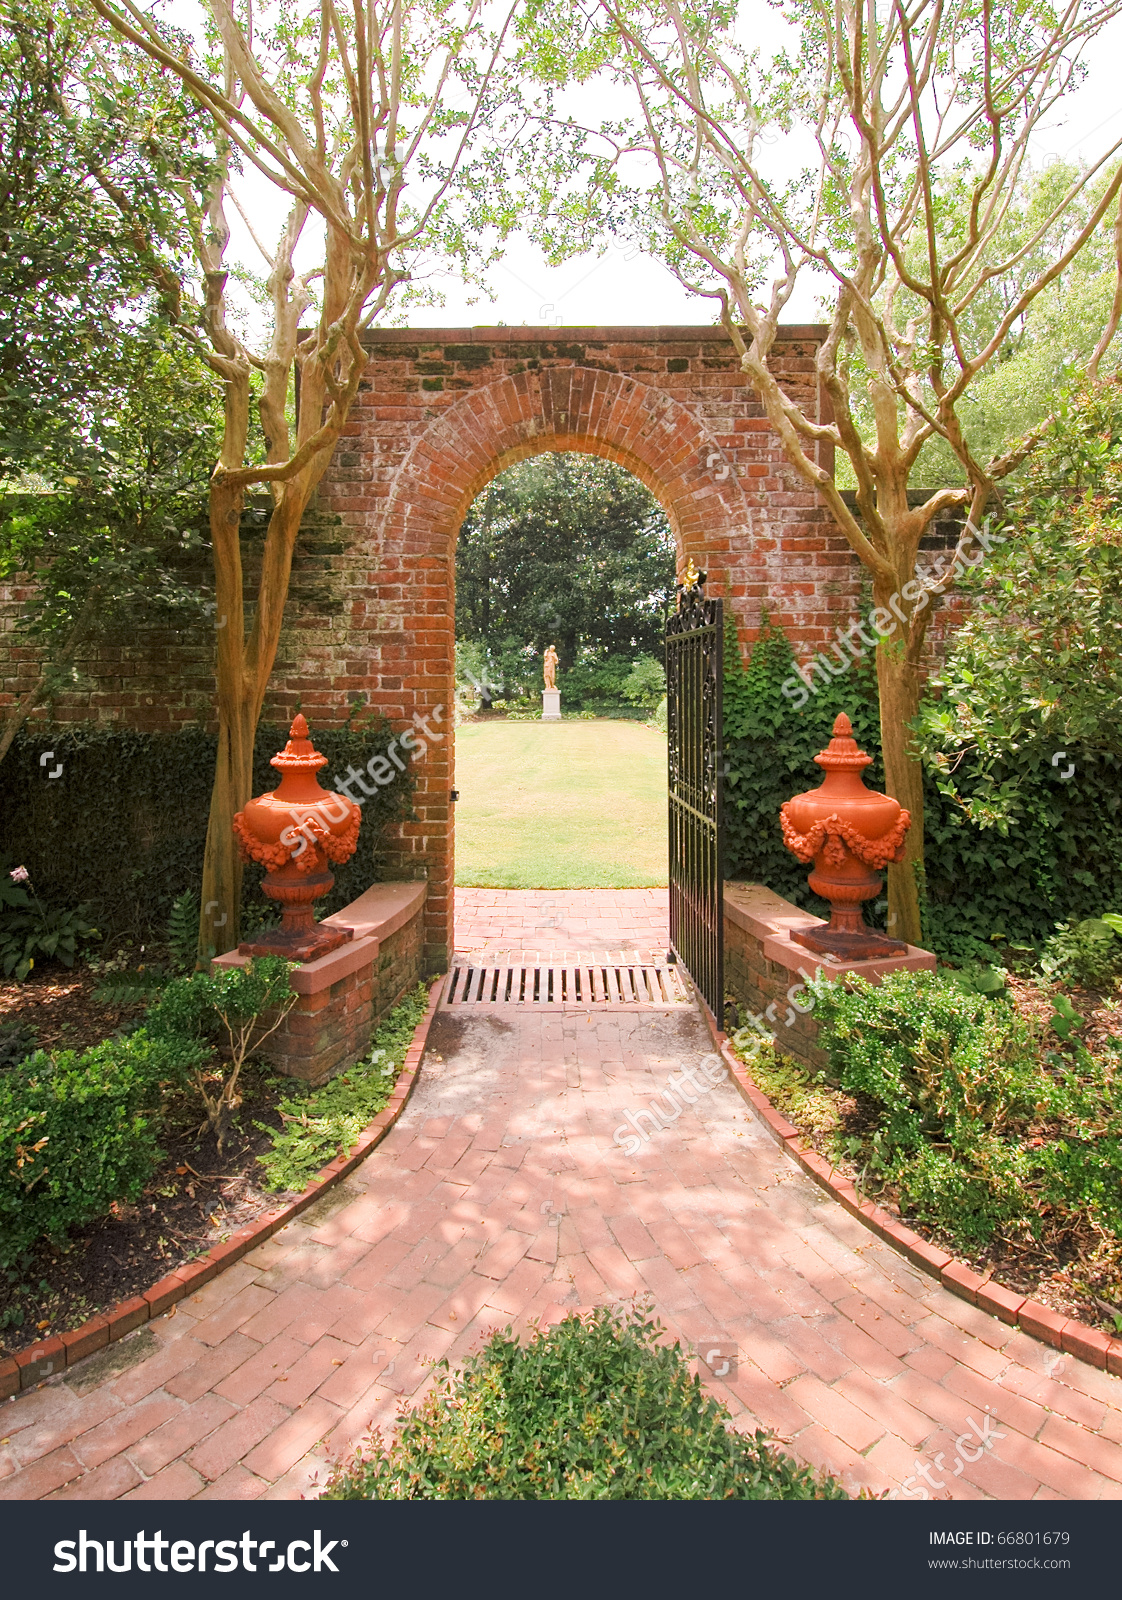 Tryon Palace State Historic Site Brick Arch And Path Stock Photo.